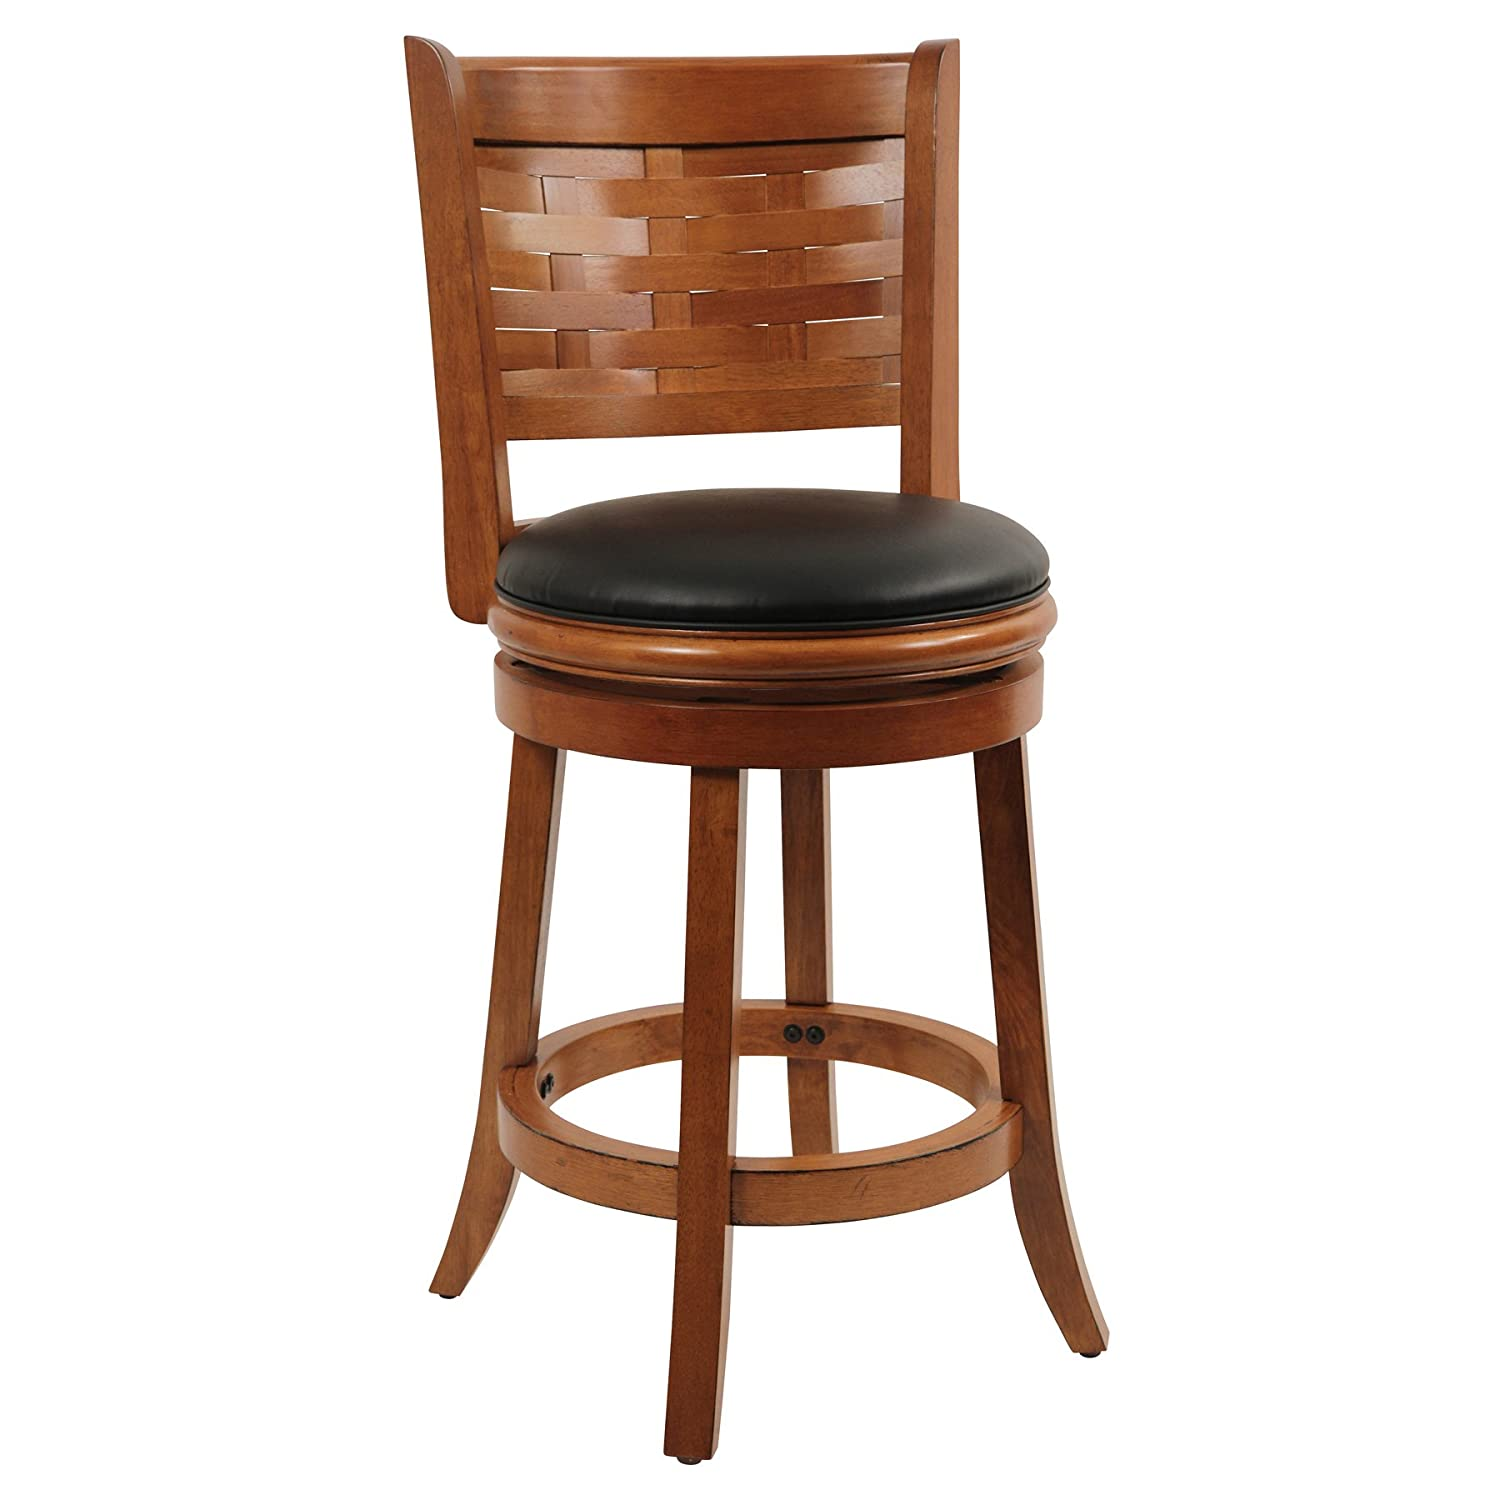 Cheap Bar Stools with Back 2013 : 71mrmoAYgRLSL1500 from www.squidoo.com size 1500 x 1500 jpeg 136kB